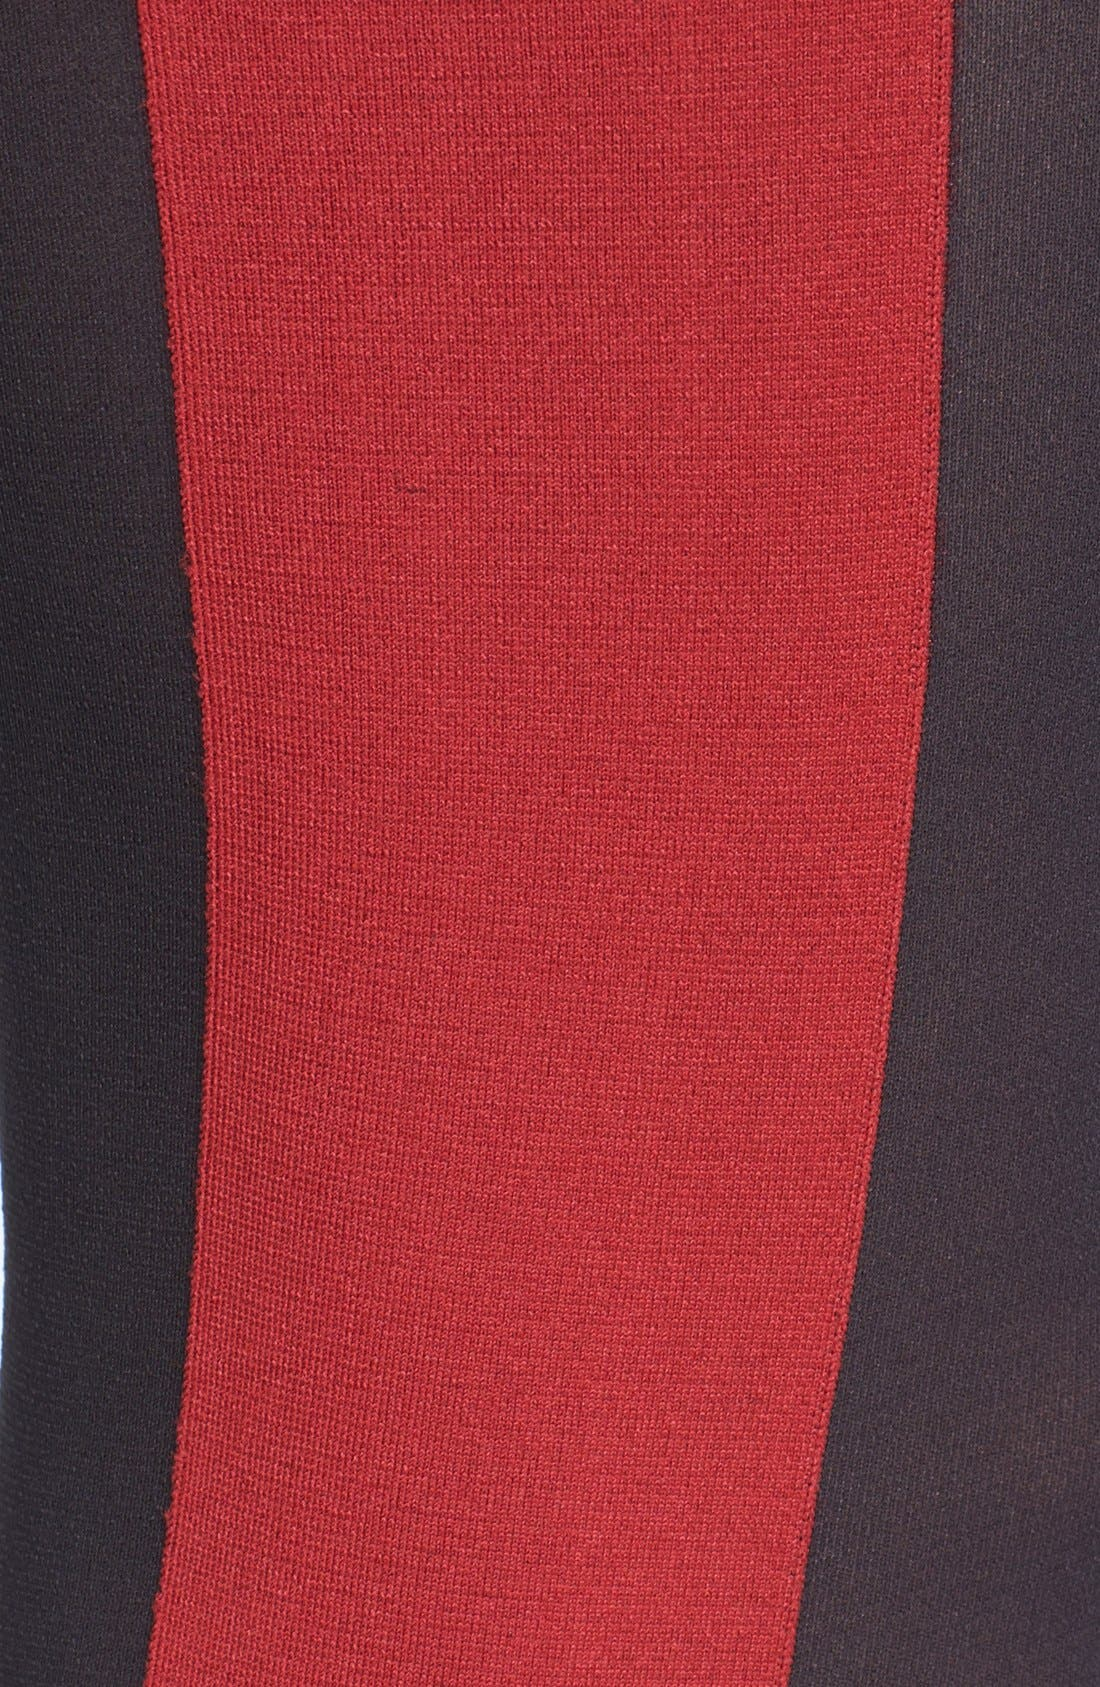 Alternate Image 2  - DKNY Colorblock Tights